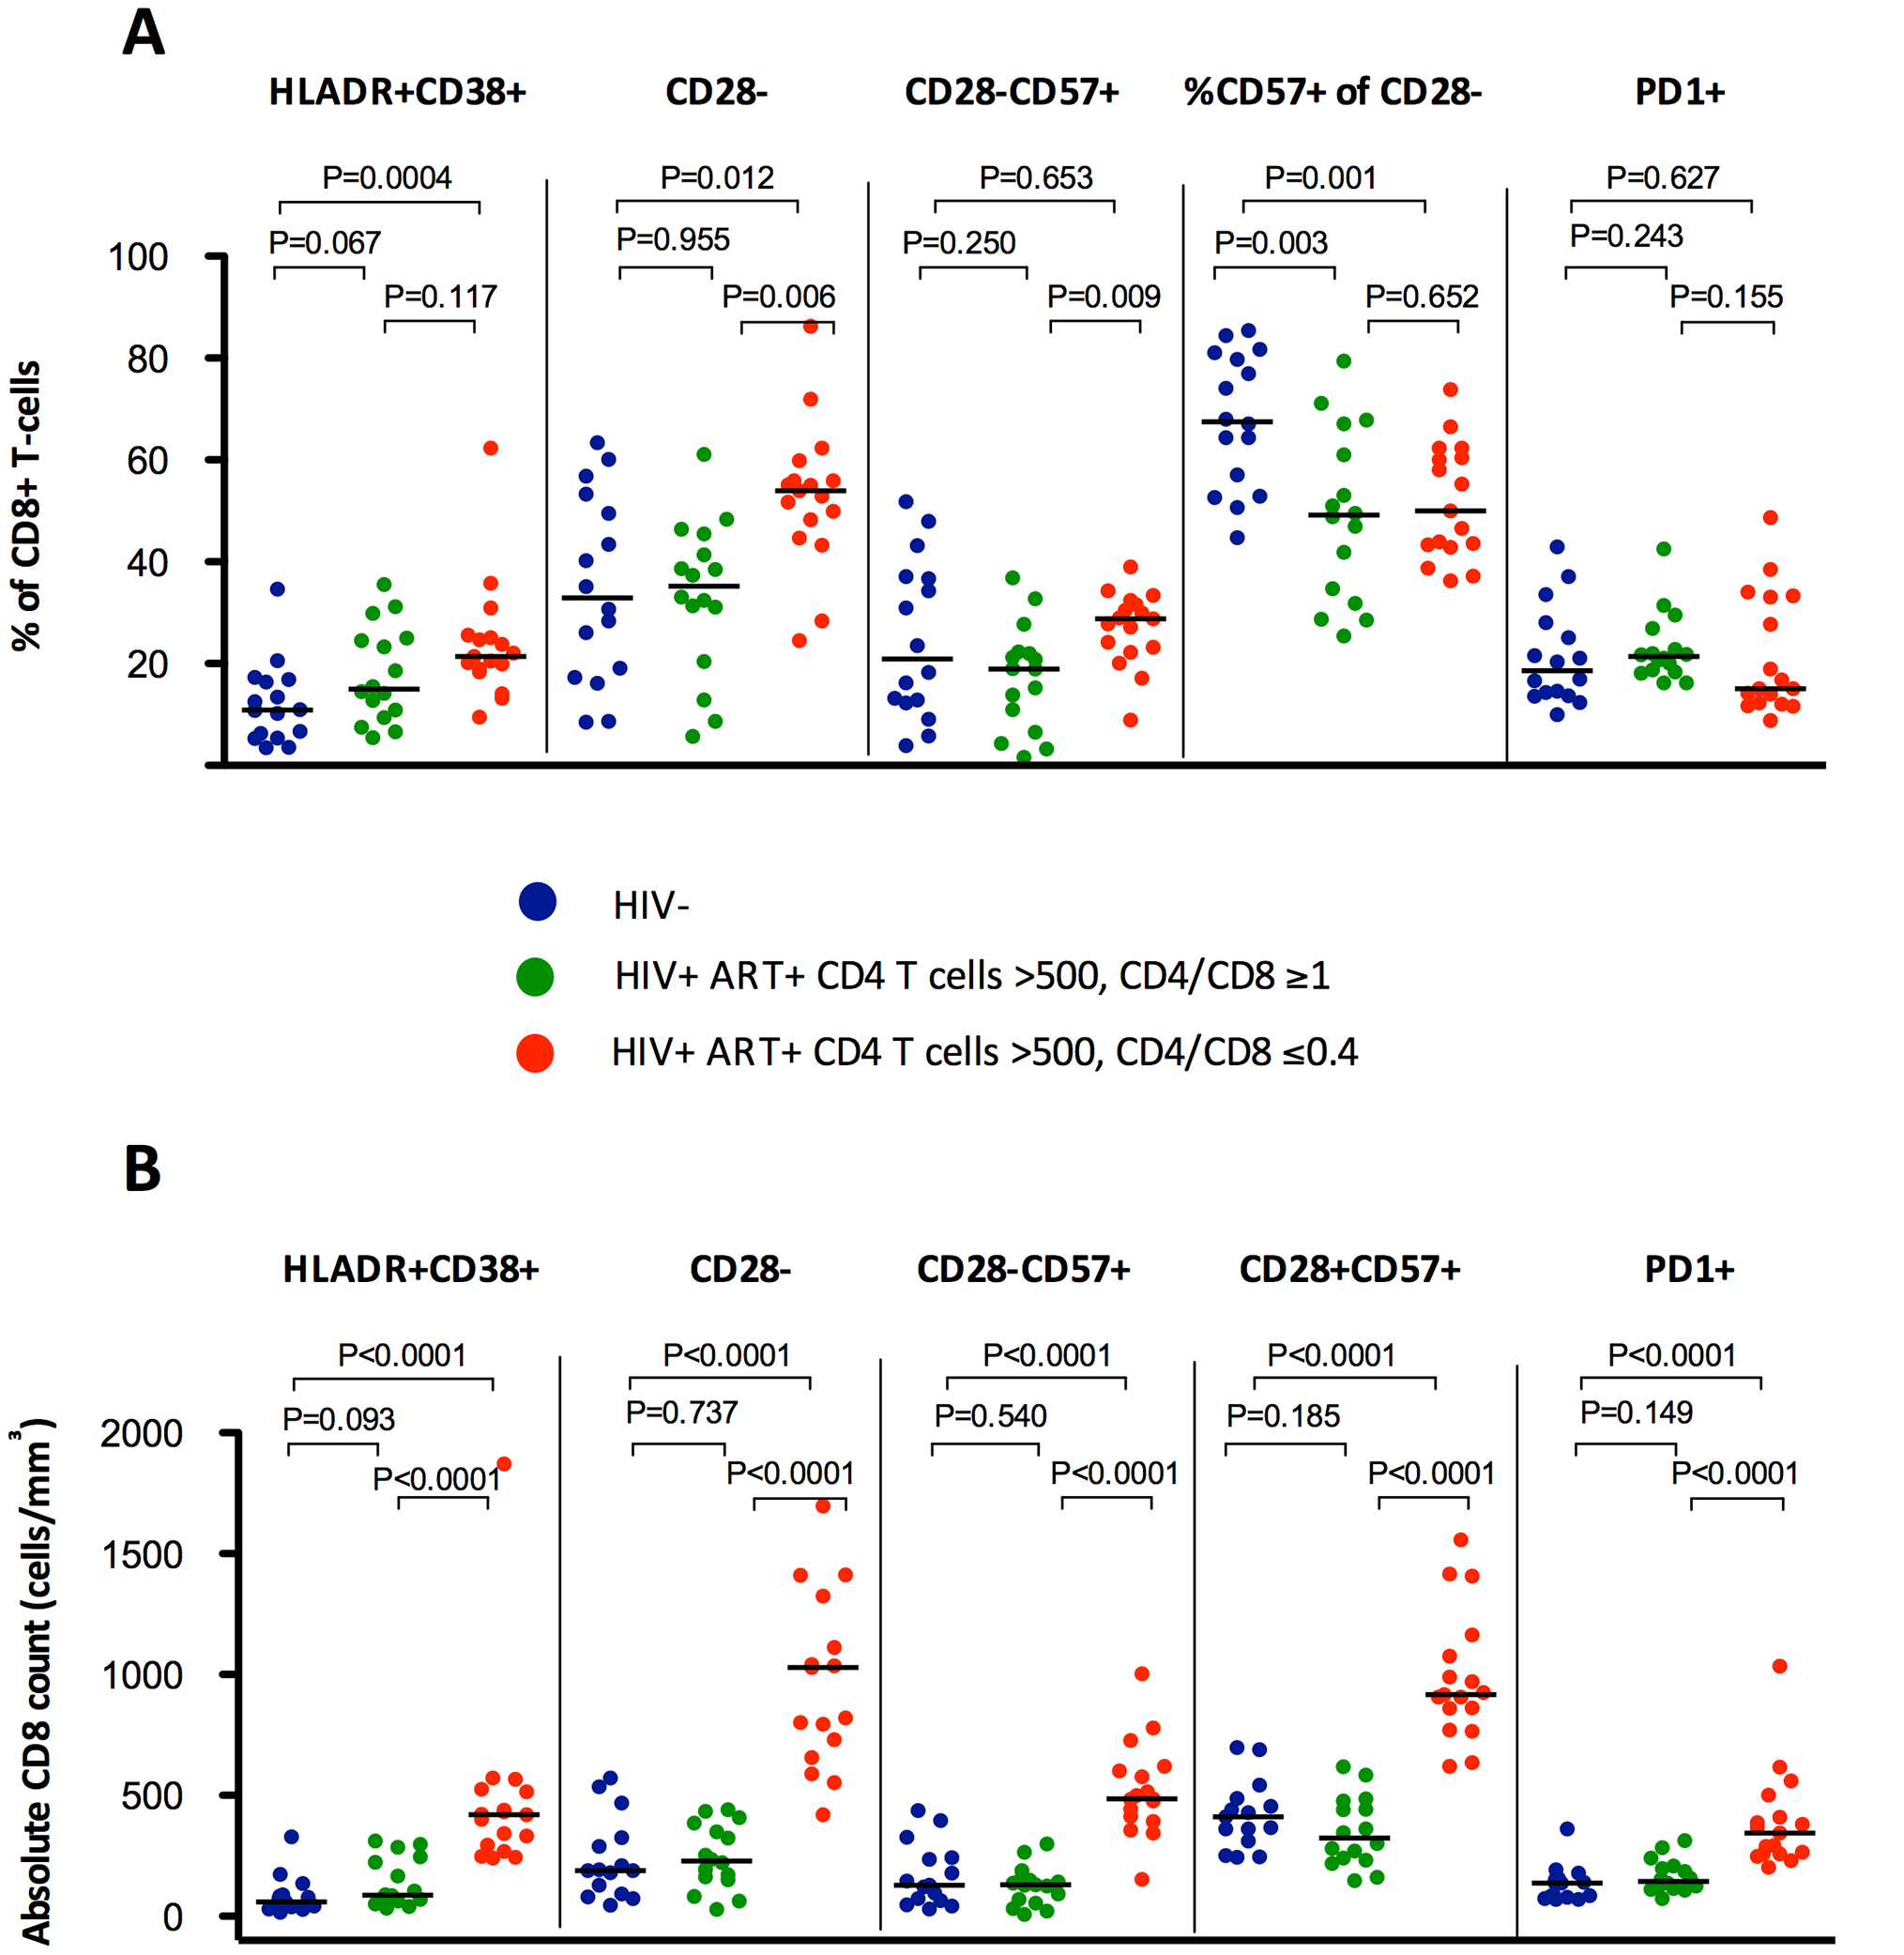 Percentages and absolute counts of CD8+ activation phenotypes among HIV-/CMV+ individuals and ART-suppressed HIV-infected patients with CD4 counts &gt;500 cells/mm<sup>3</sup> stratified by a normal (4th quartile, ≥1, in green) or low (1st quartile, ≤0.4, in red) CD4/CD8 ratio.